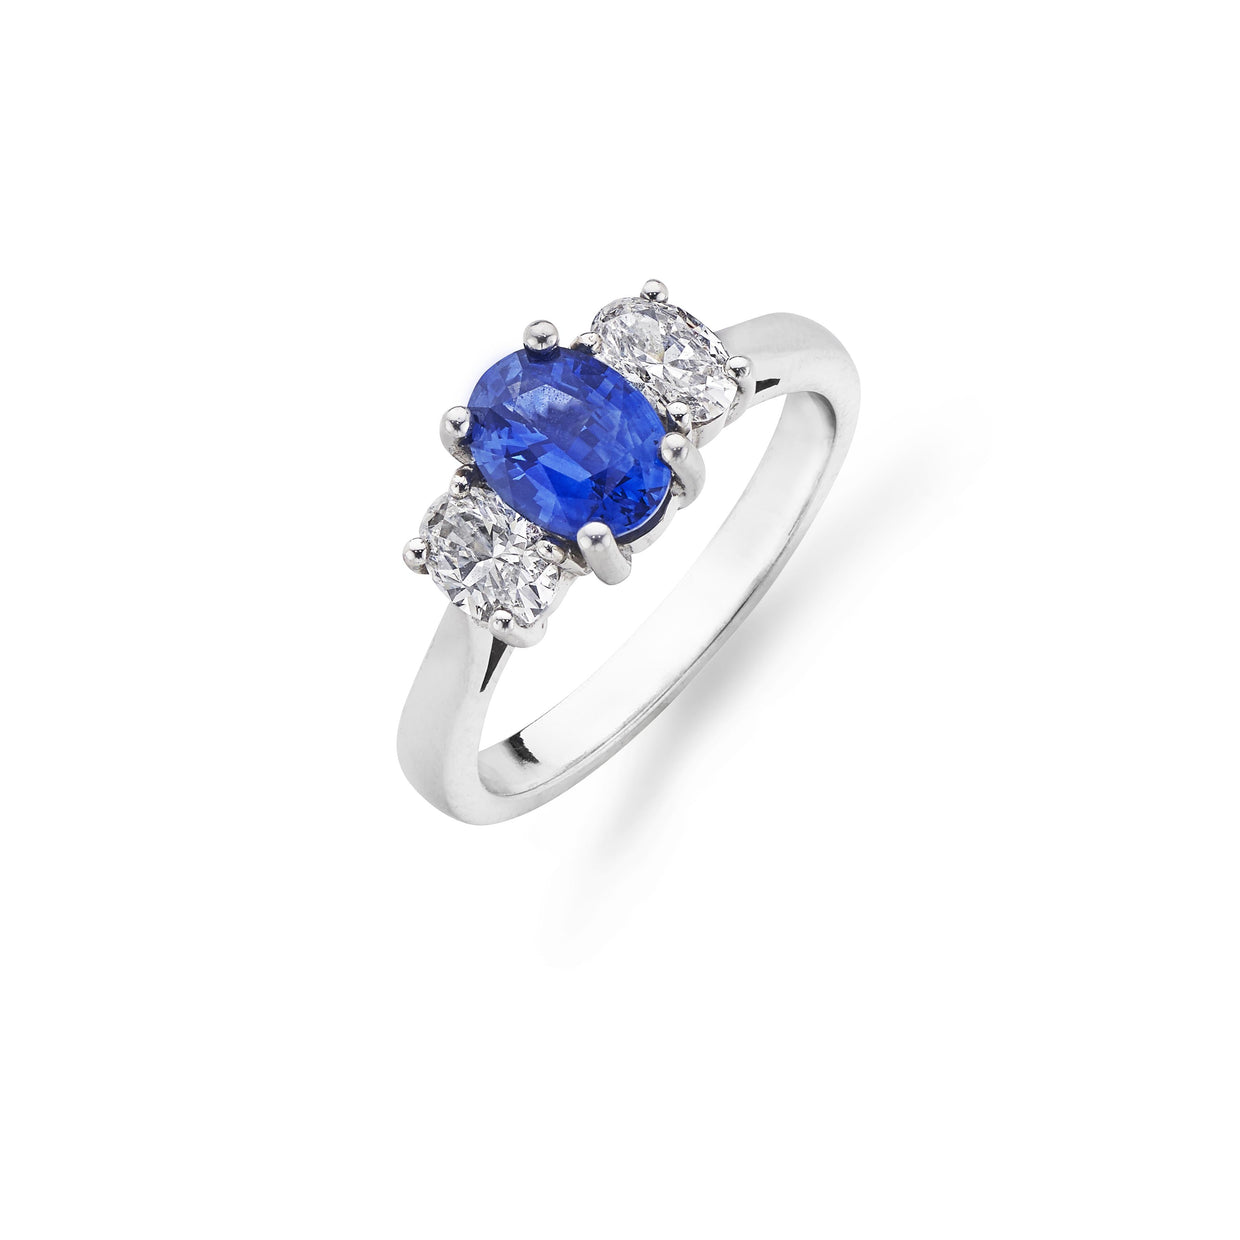 White Gold Oval-Cut Sapphire & Diamond 3-Stone Ring - Hamilton & Inches